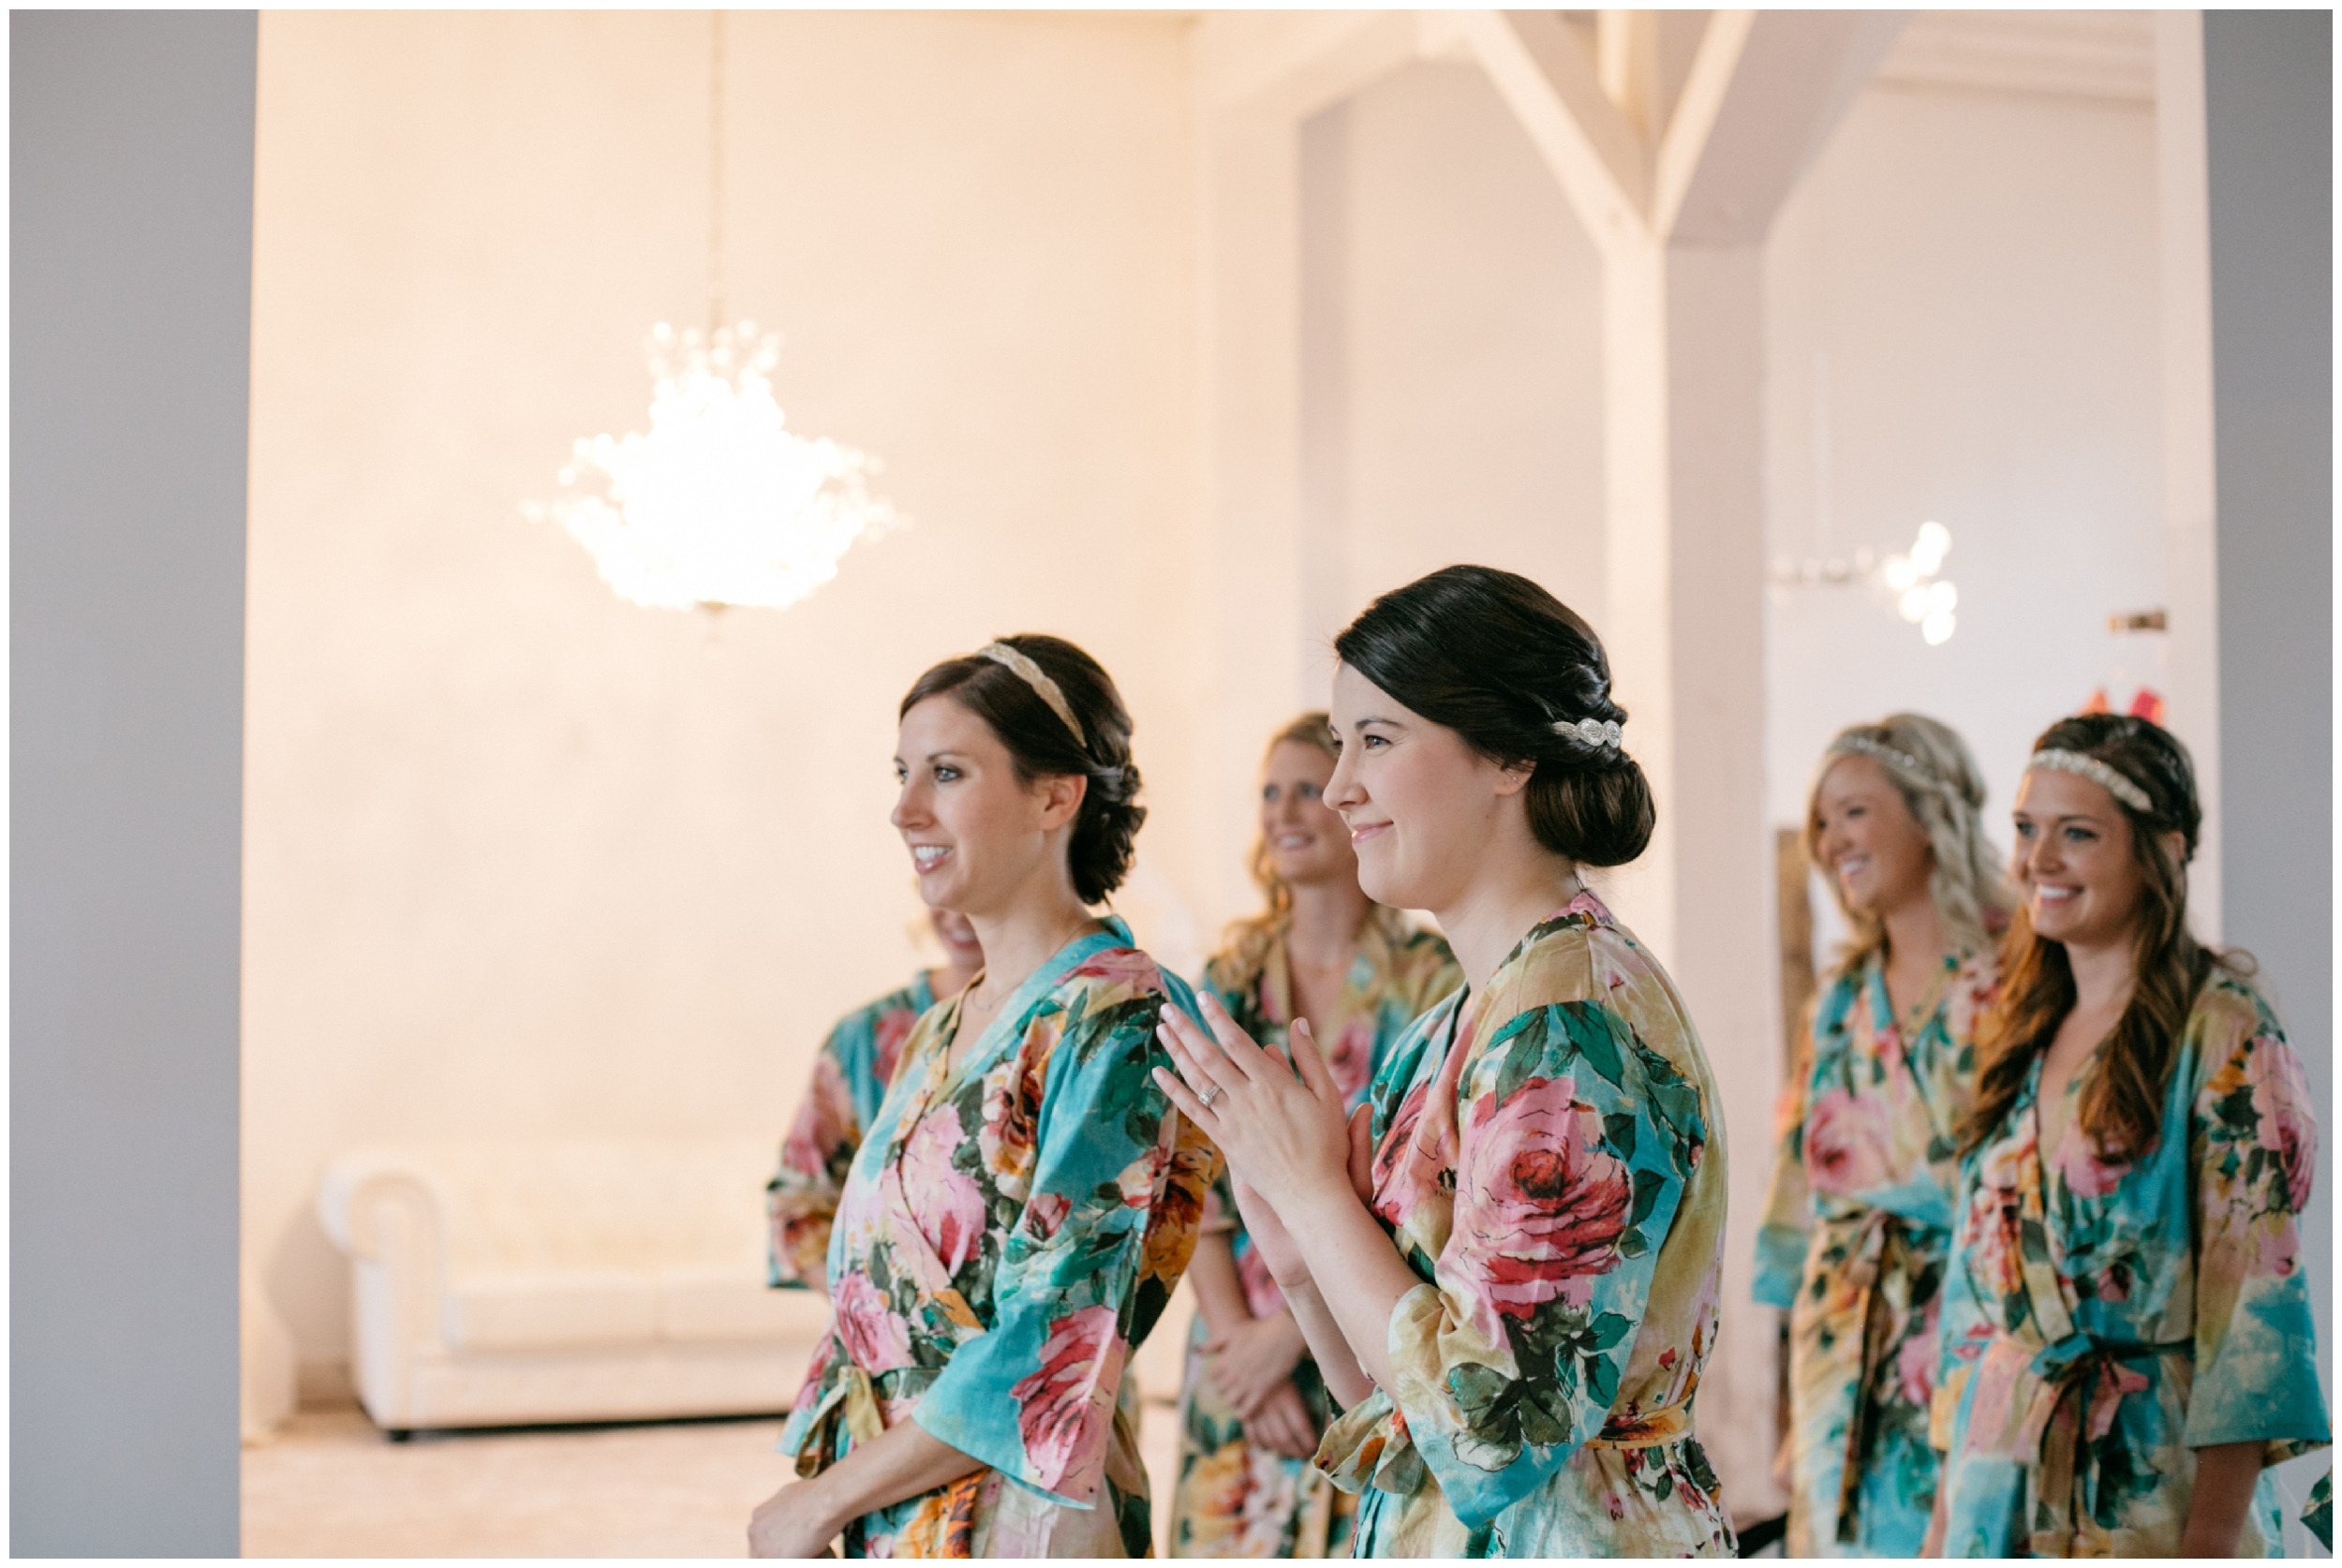 Emotional bridesmaids in floral robes watching bride get into her wedding dress at the NP Event Space